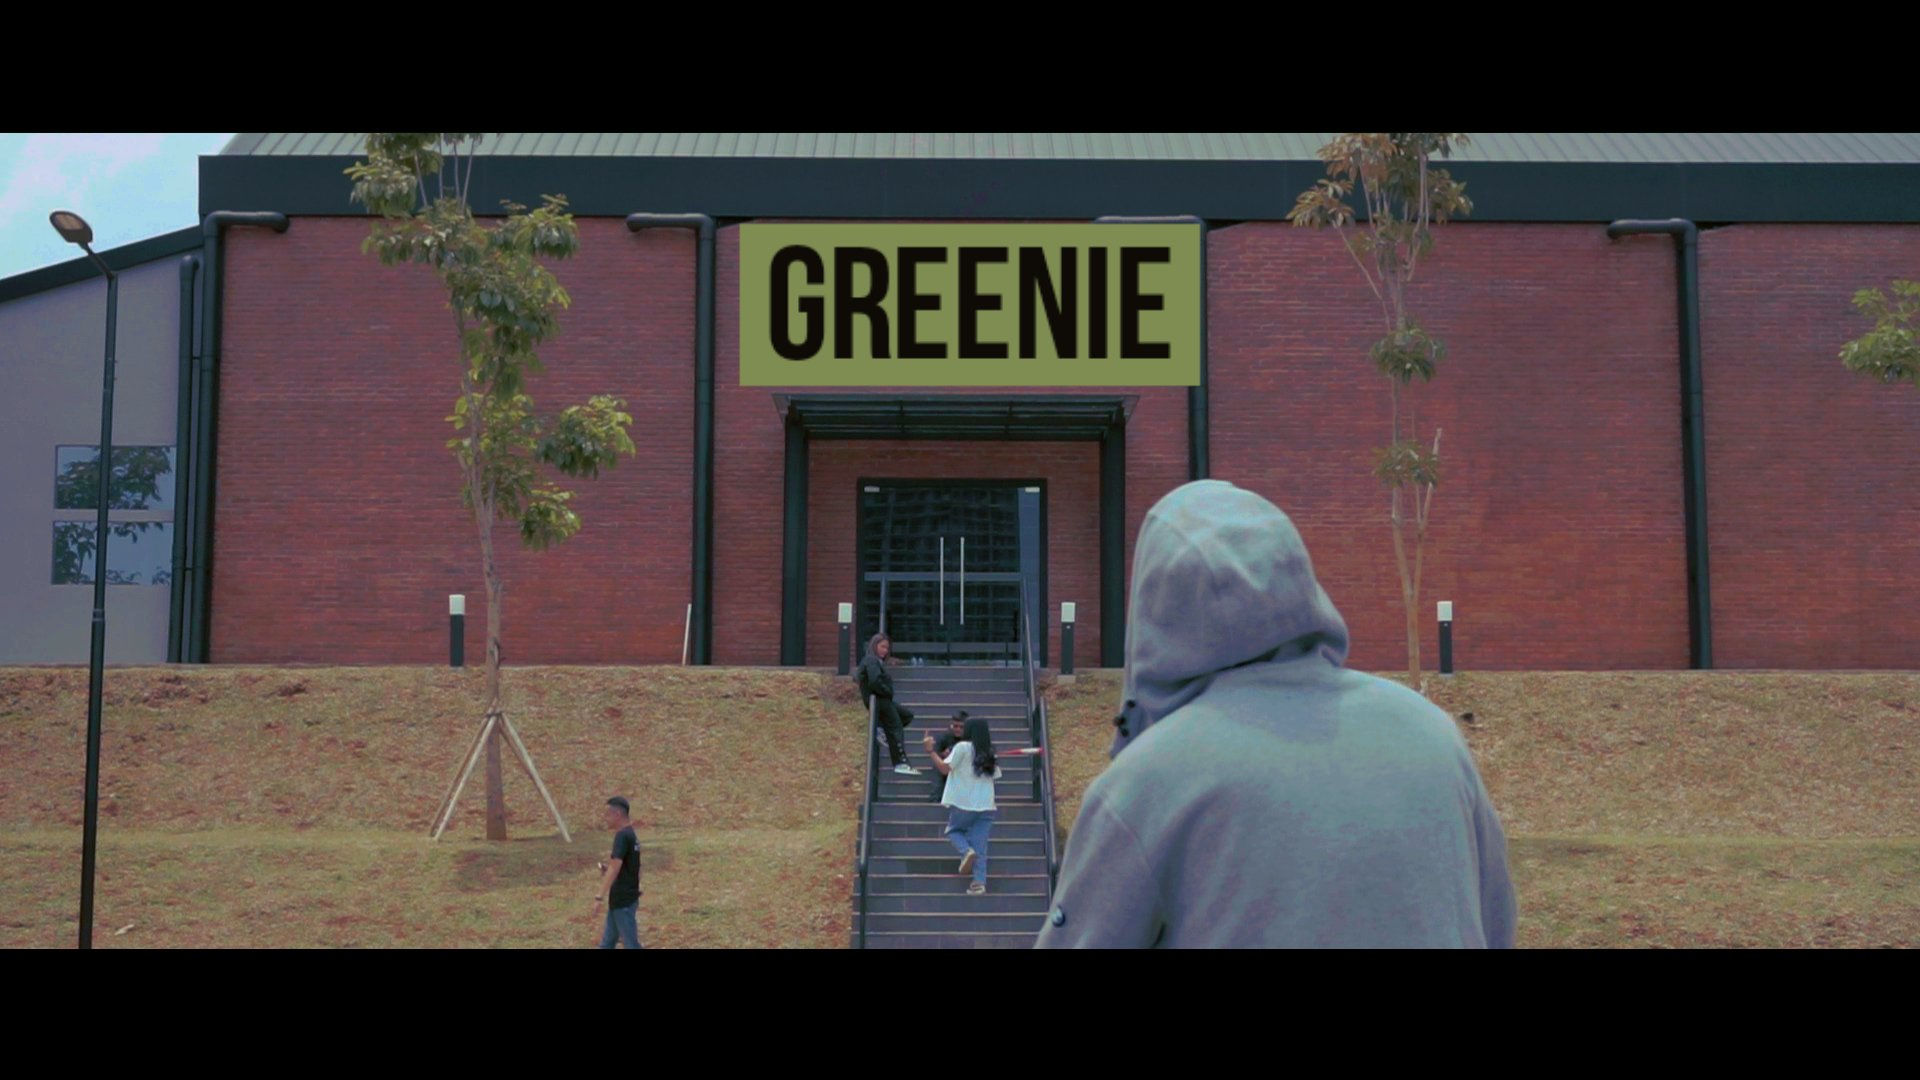 Greenie, My Rode Reel 2020 - Short Film.